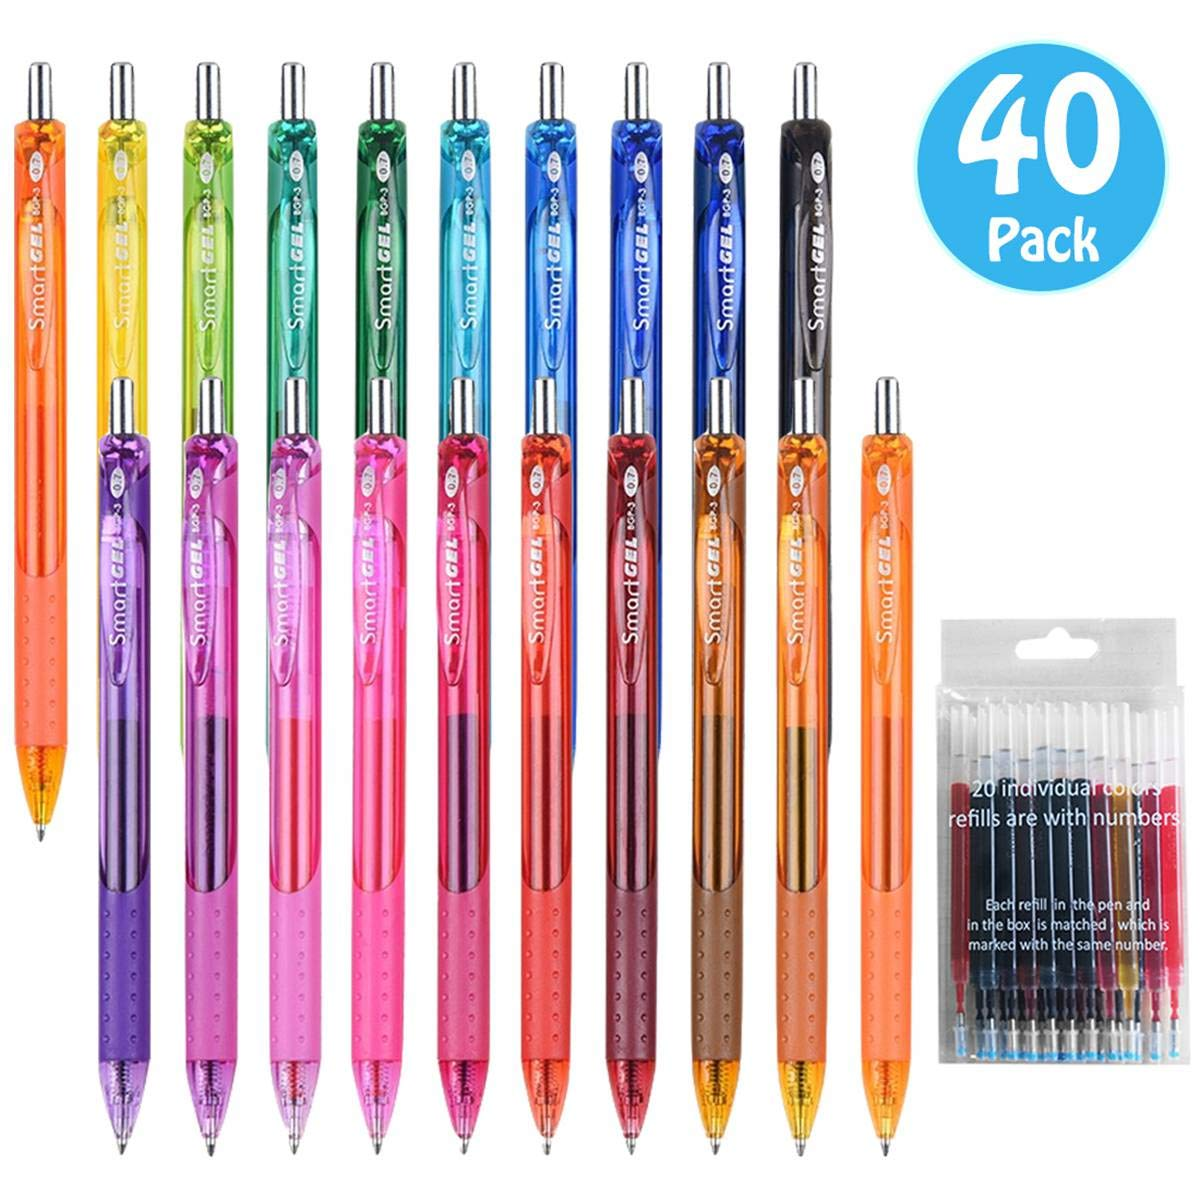 40 Pack Gel Pens Set, 20 Colored Gel Pens With 20 Matched Refills, Medium Point Retractable Gel Ink Pens With Comfortable Grip, Great for Journal Notebook Planner in School Office by Smart Color Art